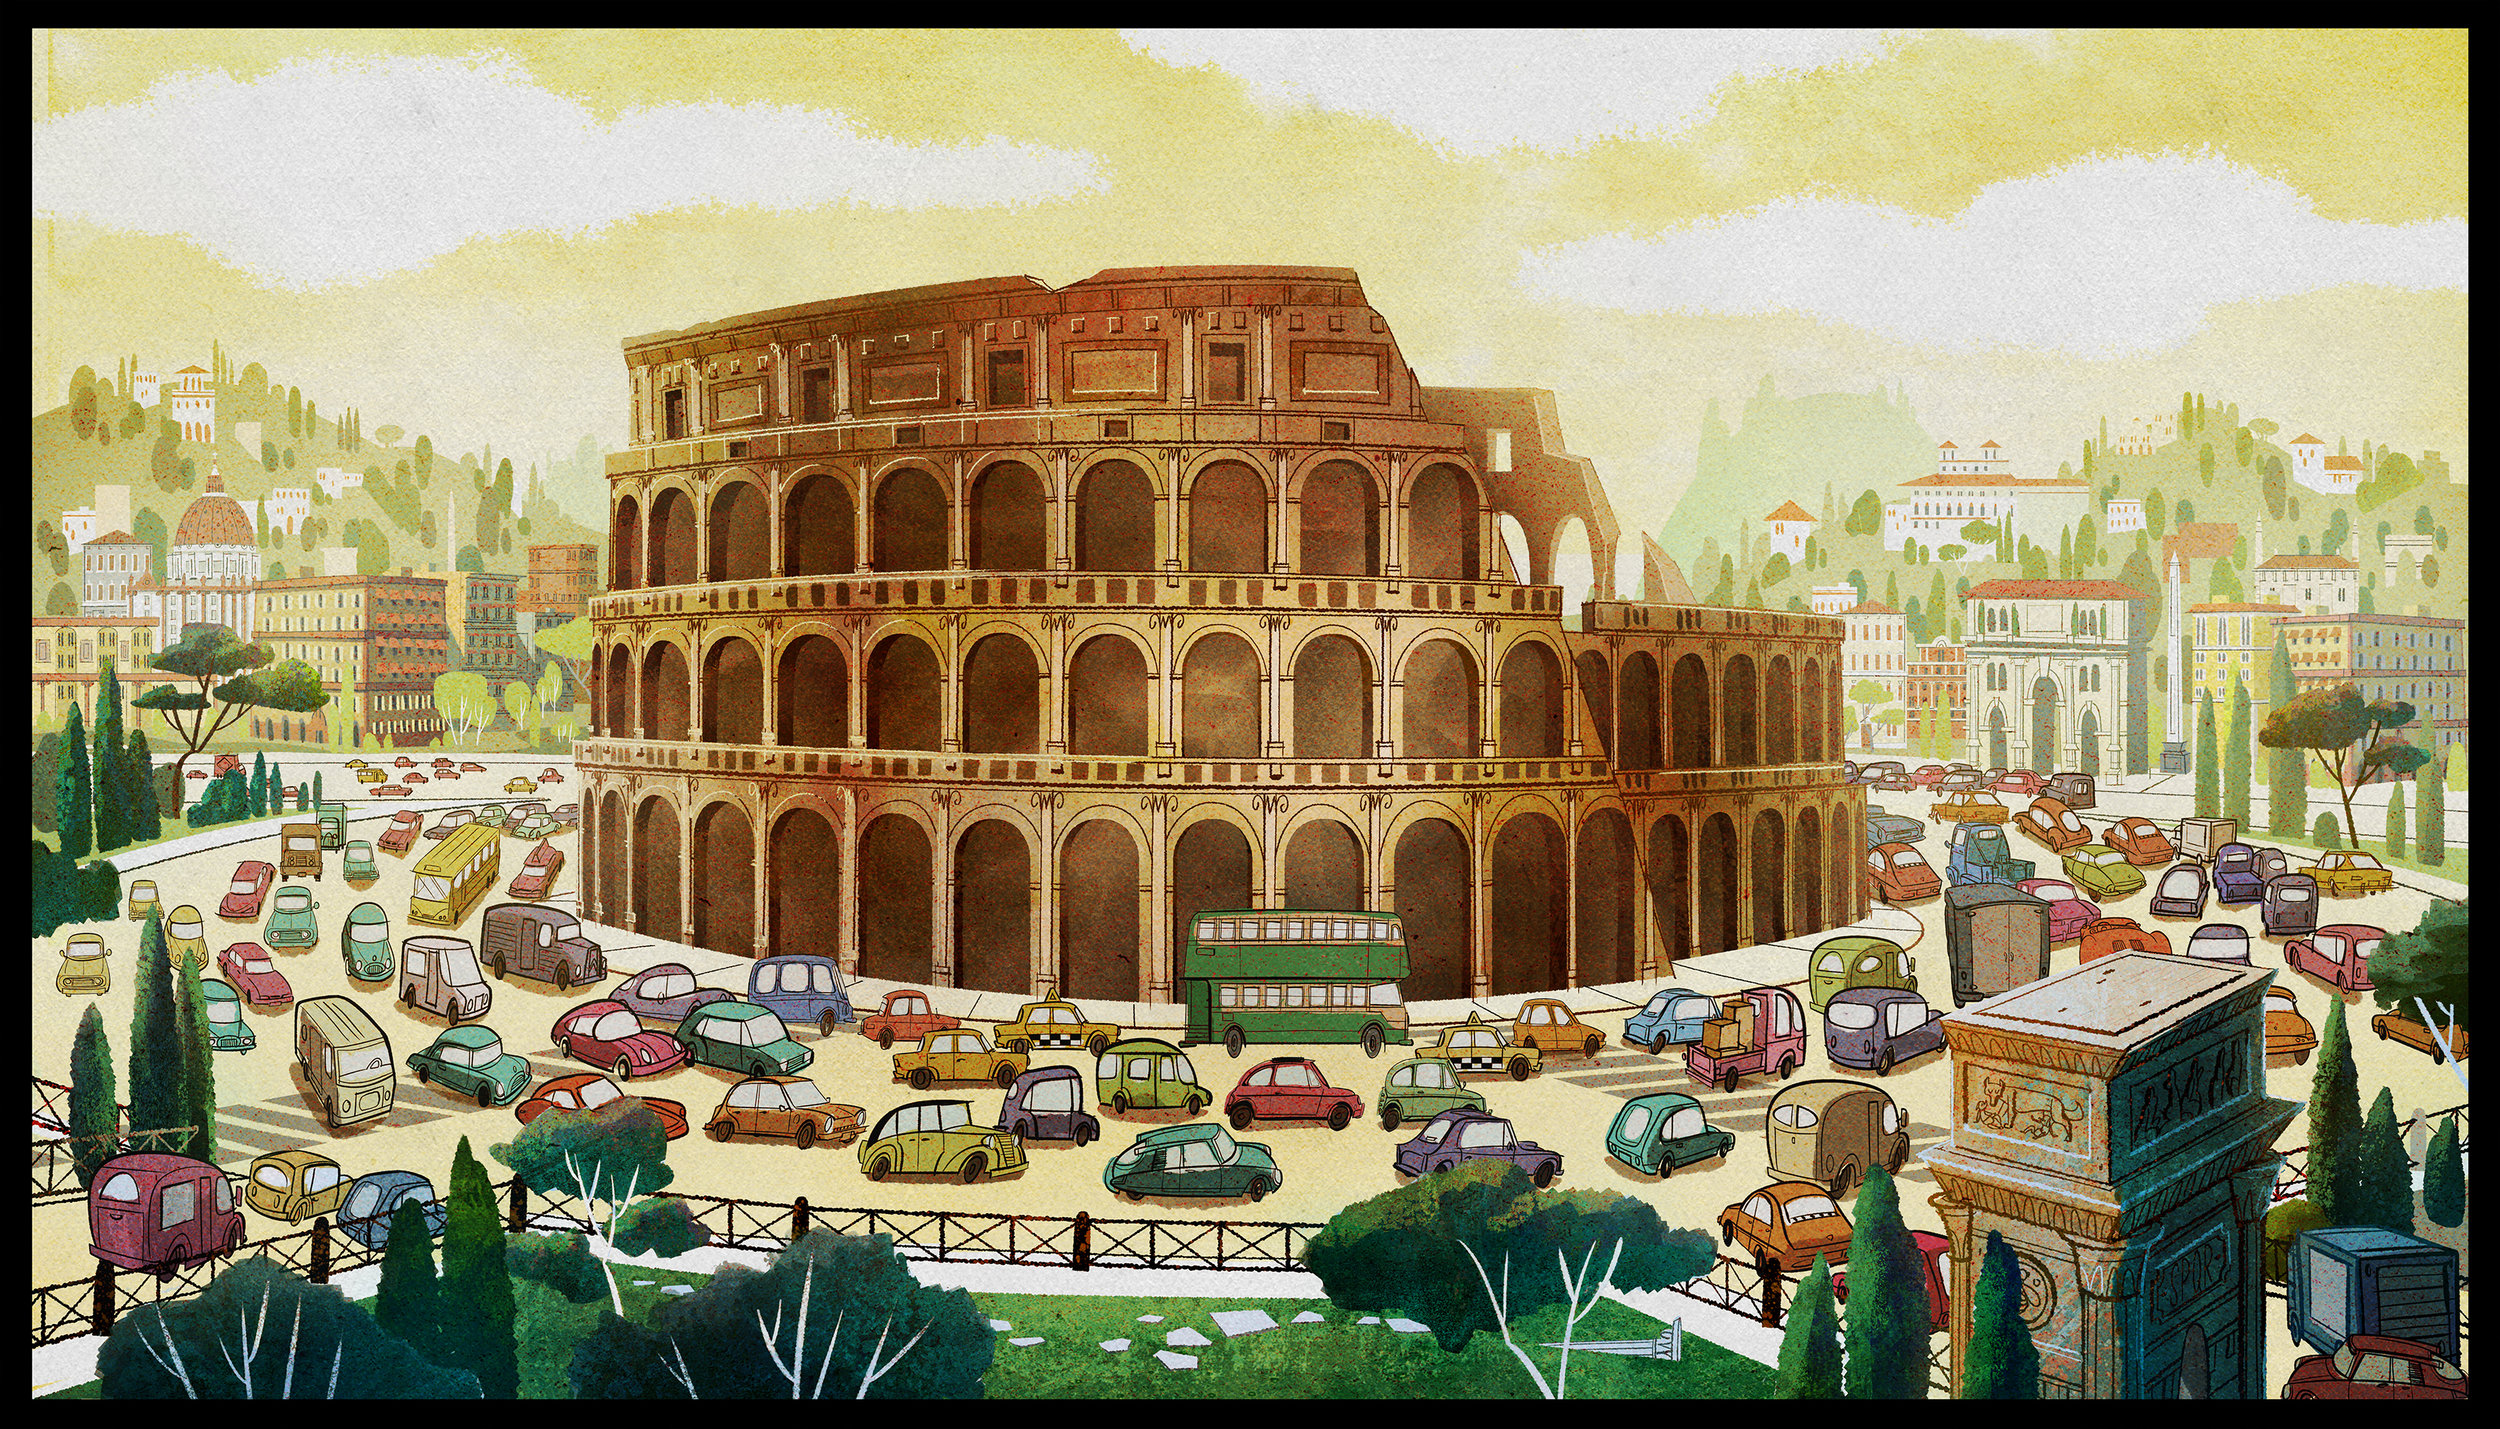 482M_503Sc1_Title_Card_to_Colosseum_Truck_Out_RETAKE.jpg